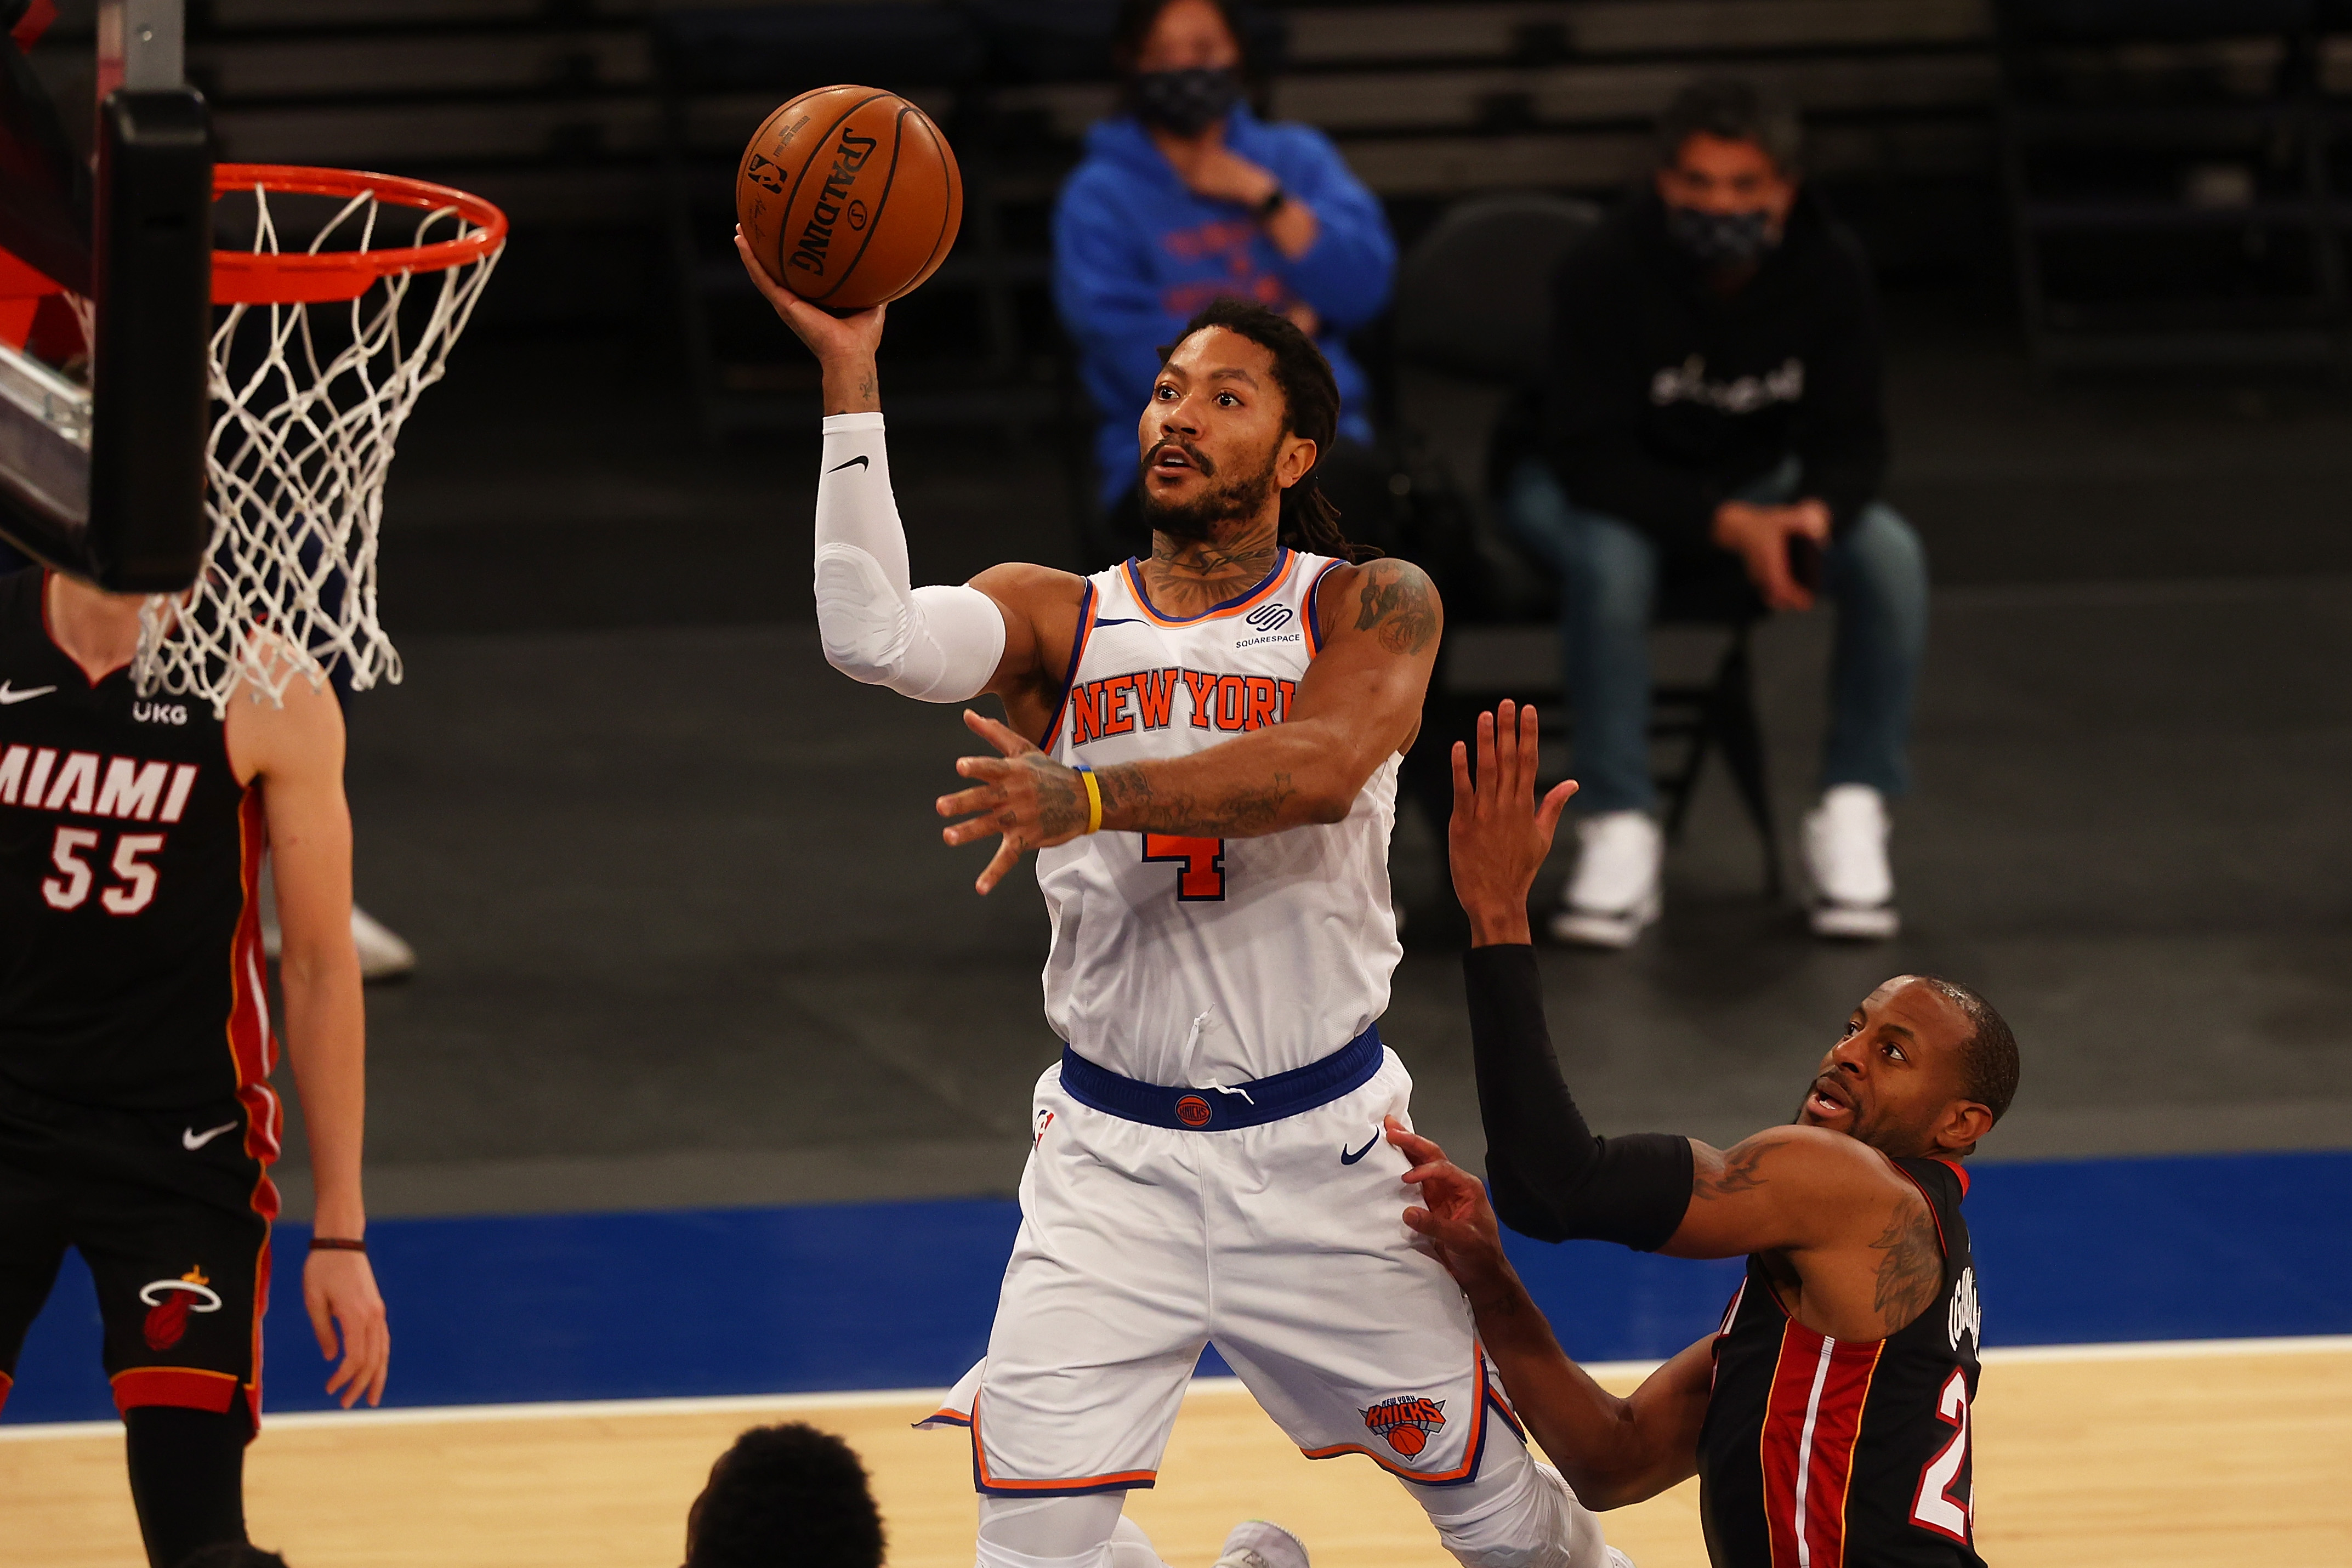 Derrick Rose has helped turn around the Knicks, who haven't made the playoffs since 2013.